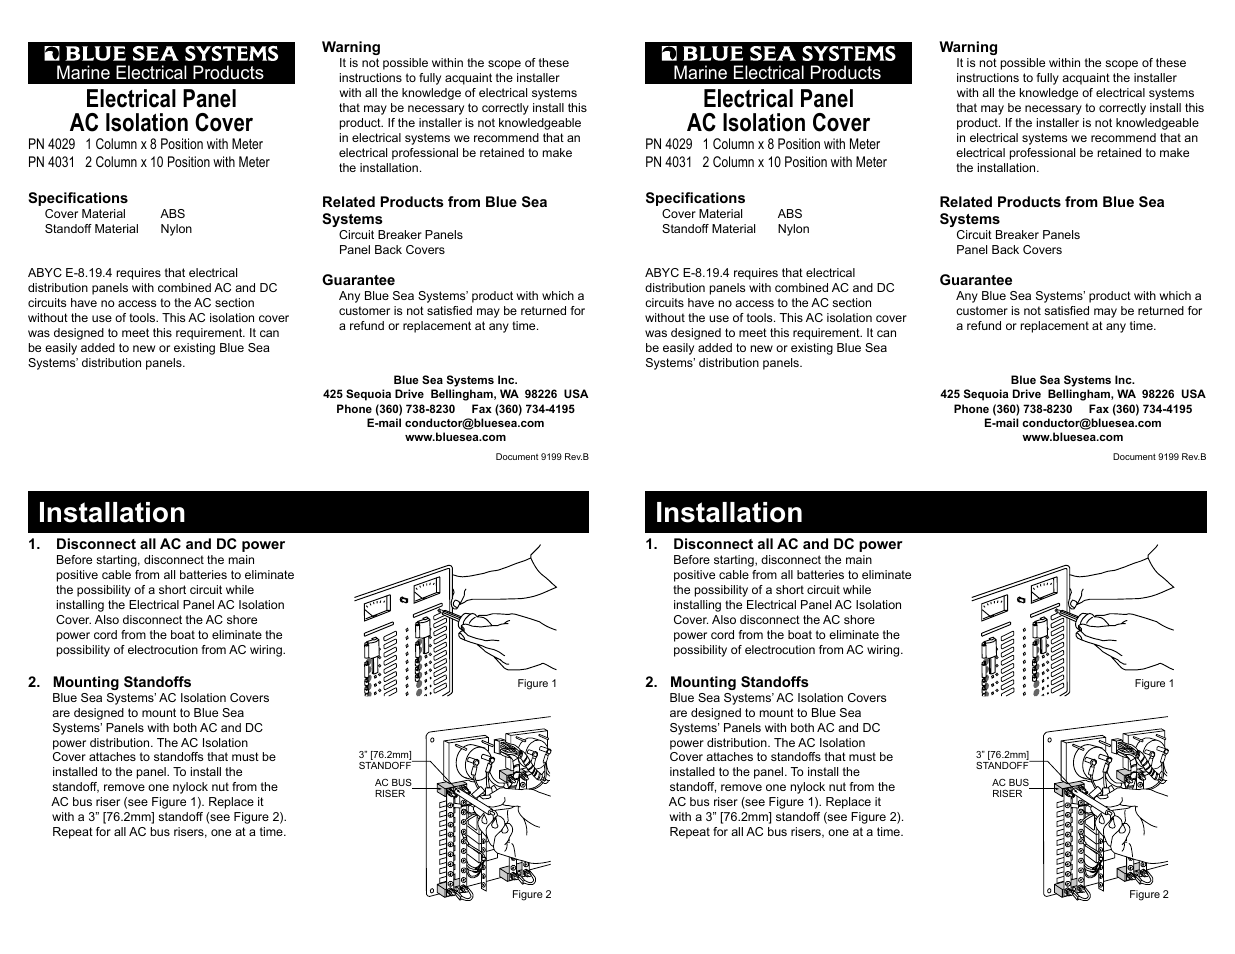 Blue Sea Systems 4027 Ac Isolation Cover 5 1 4 X 7 2x3 User Boat Wiring Manual 2 Pages Also For 4028 10 4029